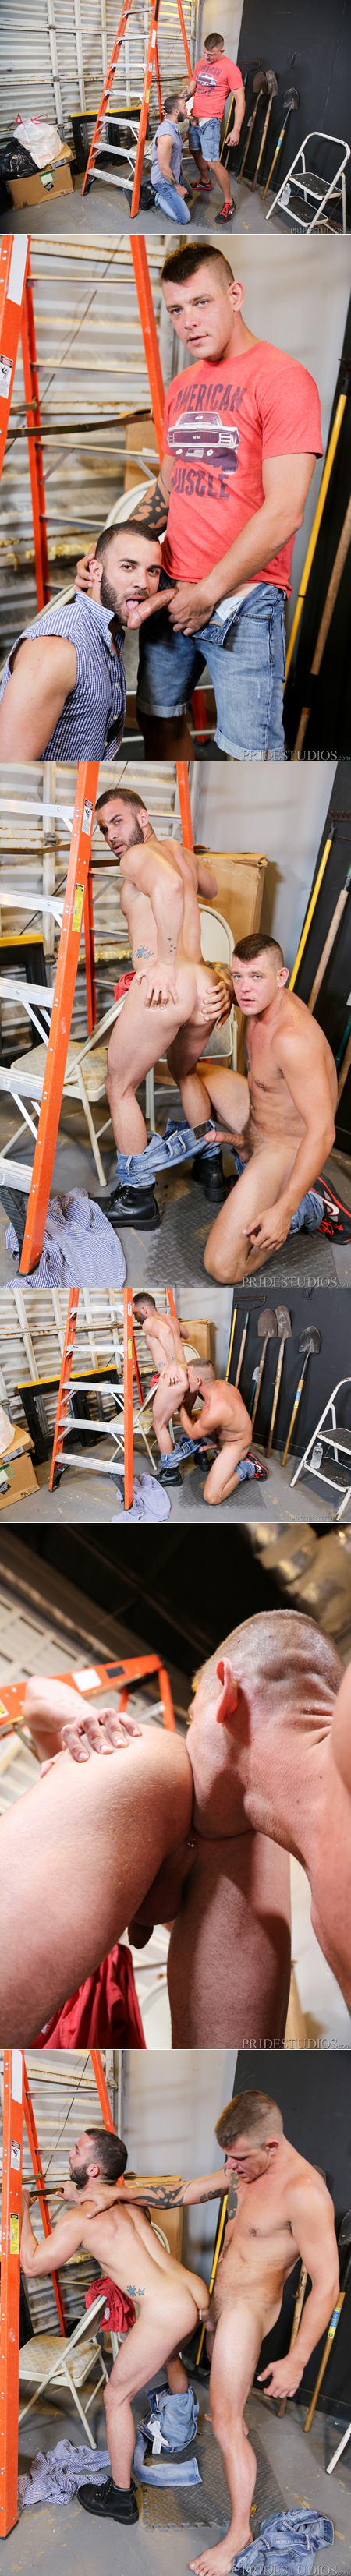 Blonde guy fucking his handyman on a ladder.